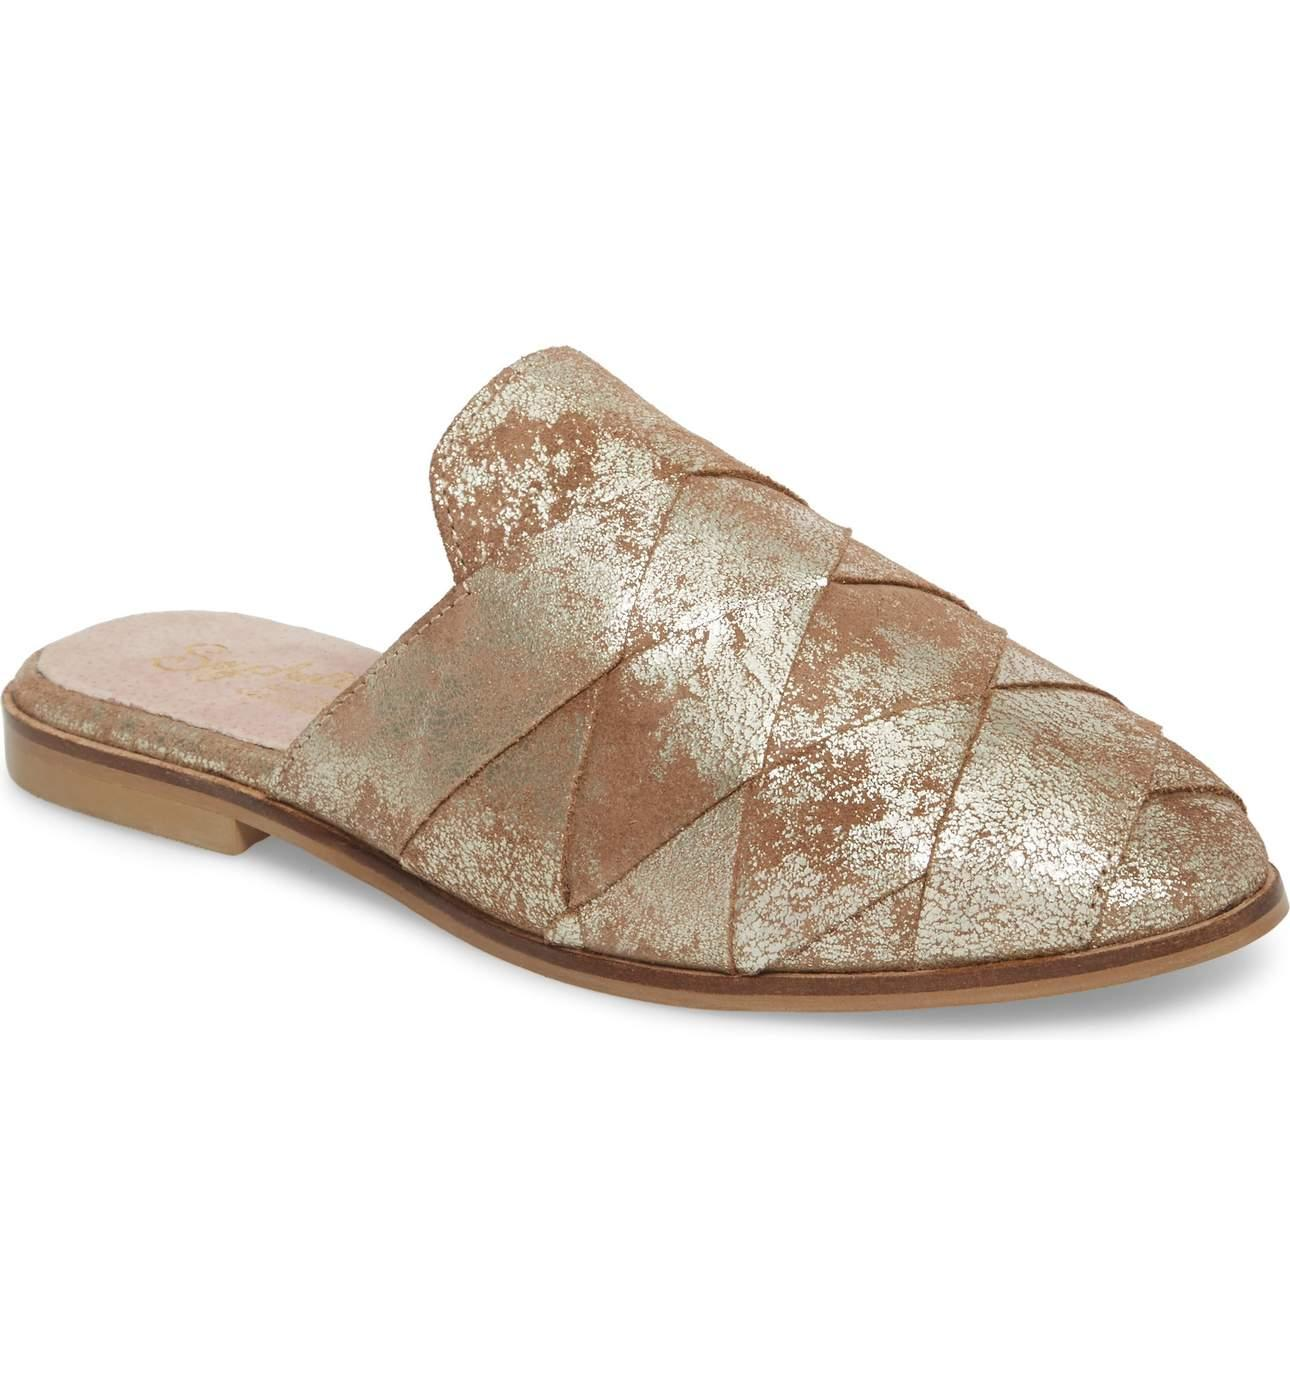 <p>Warning:{&nbsp;} You are going to see these flats everywhere this spring.{&nbsp;} I love these Mule/SEYCHELLES.{&nbsp;}Wide leather straps are woven together to create a sophisticated, wear-anywhere mule. The gold is to die for. $99.95 at Nordstrom. (Image: Nordstrom){&nbsp;}</p><p><br></p><p></p>